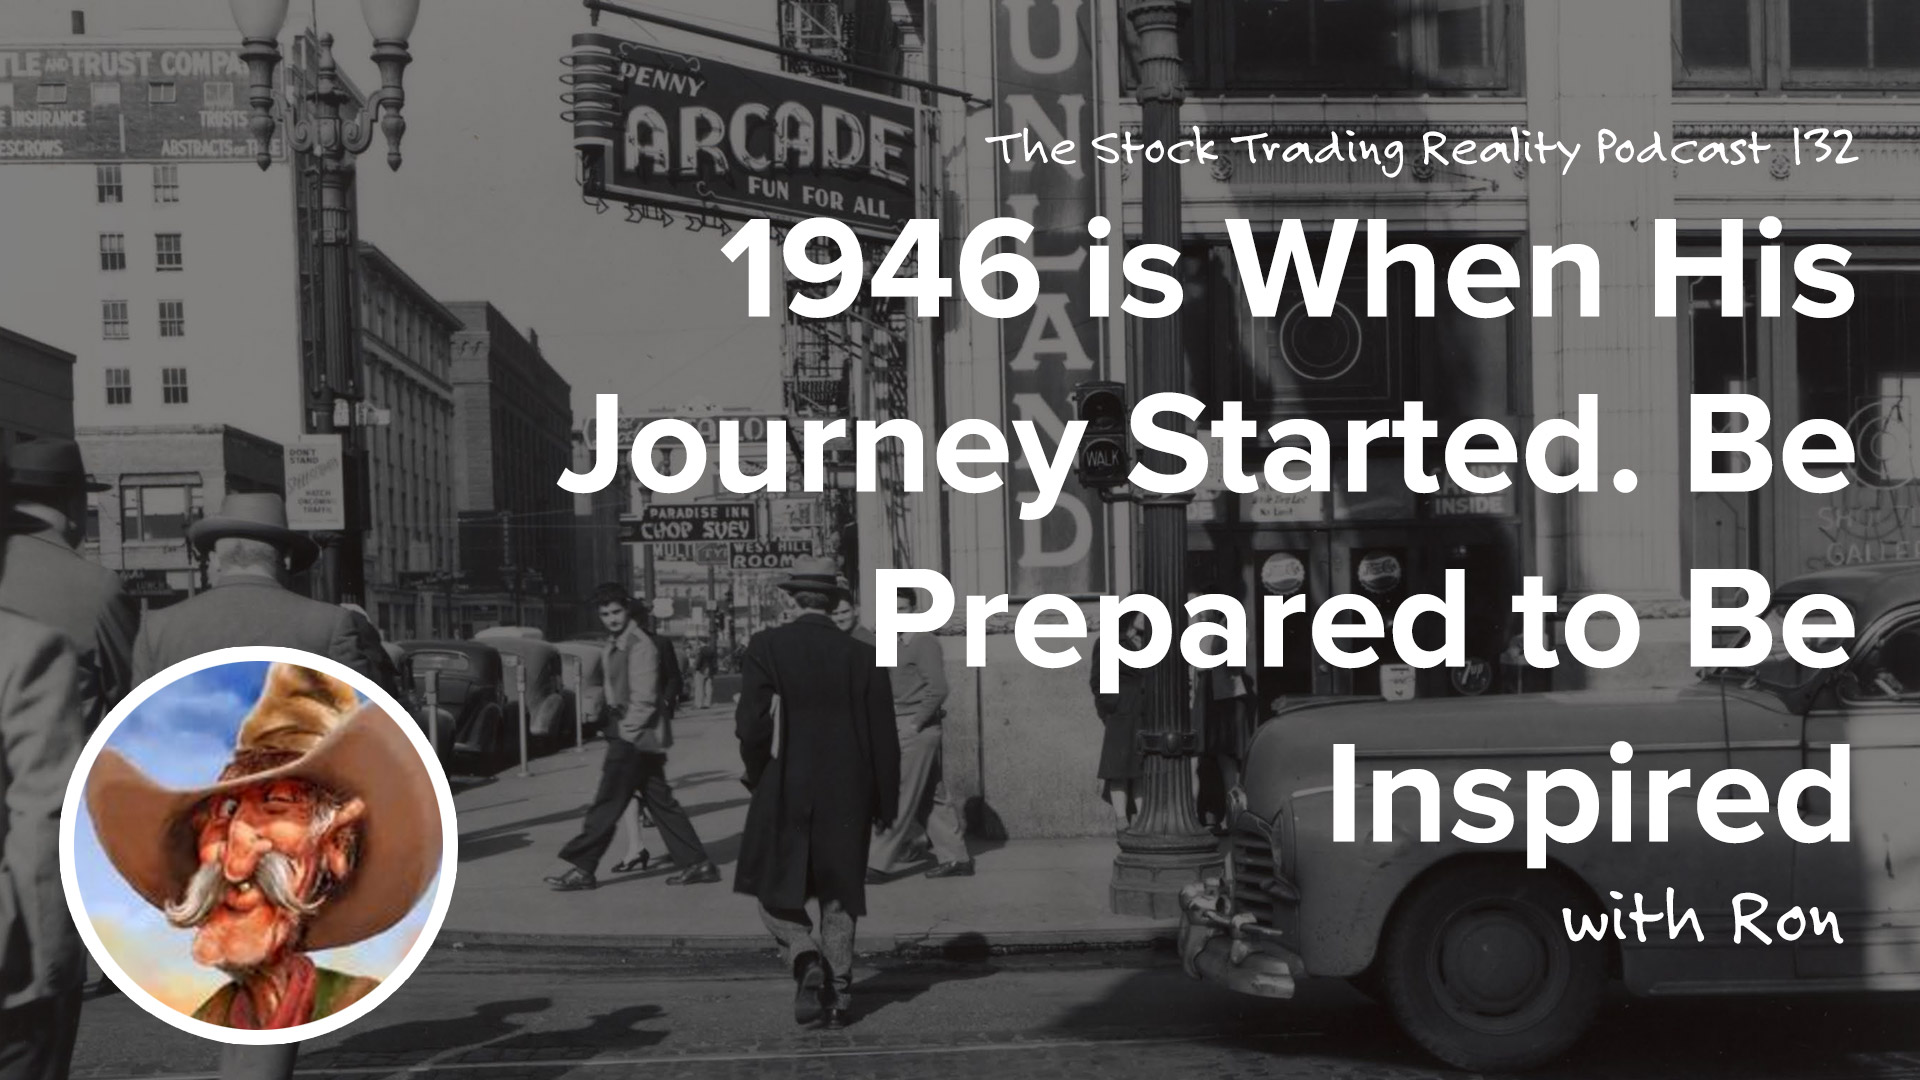 STR 132: 1946 is When His Journey Started. Be Prepared to Be Inspired